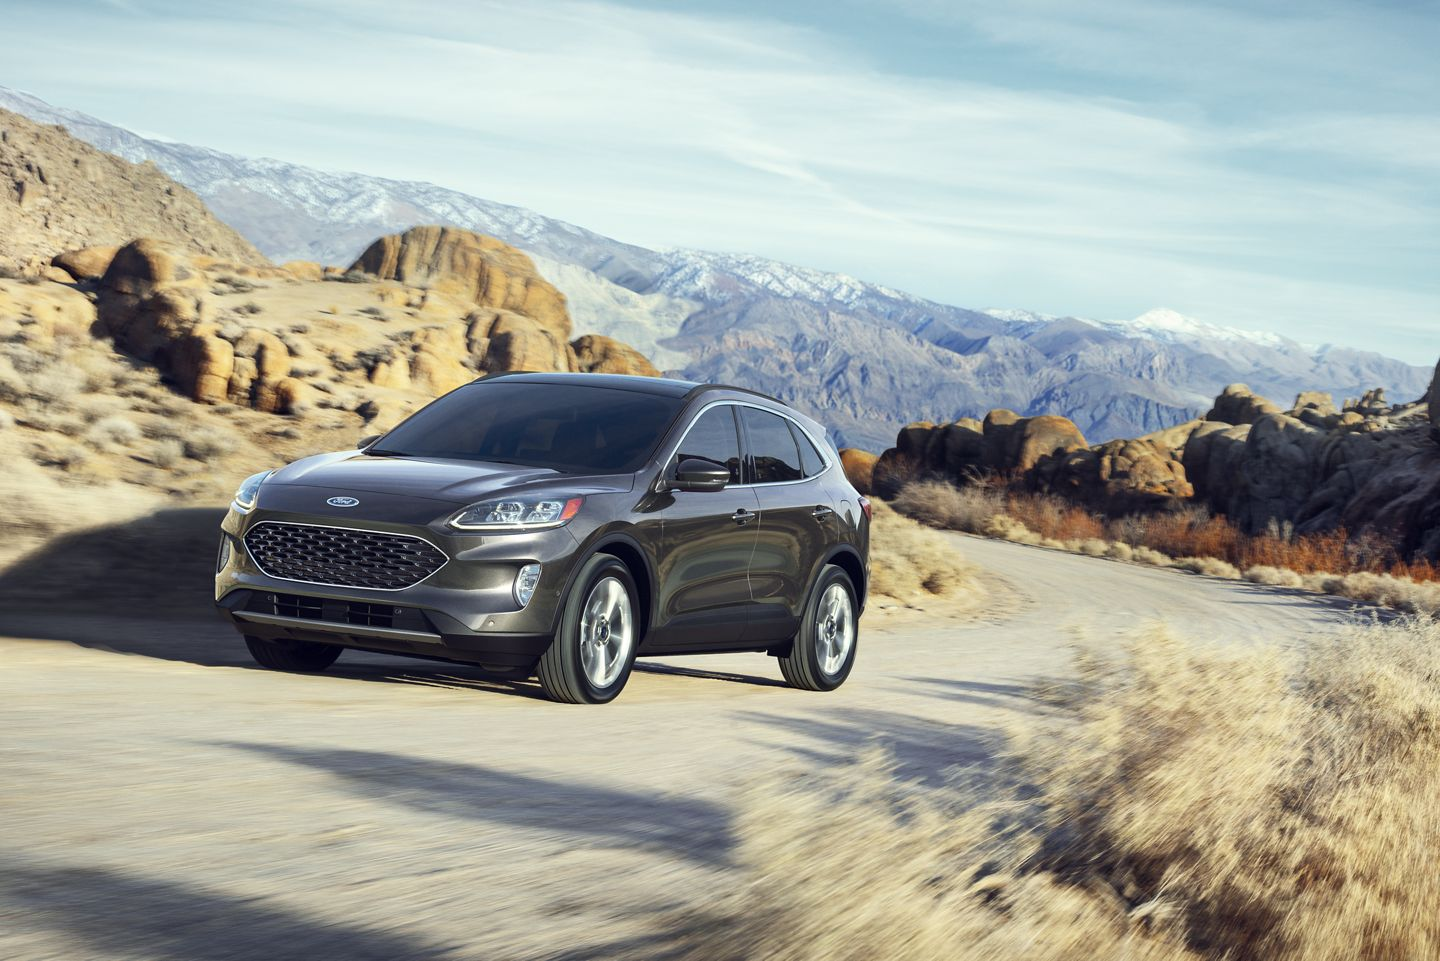 2020 Ford Escape - Design